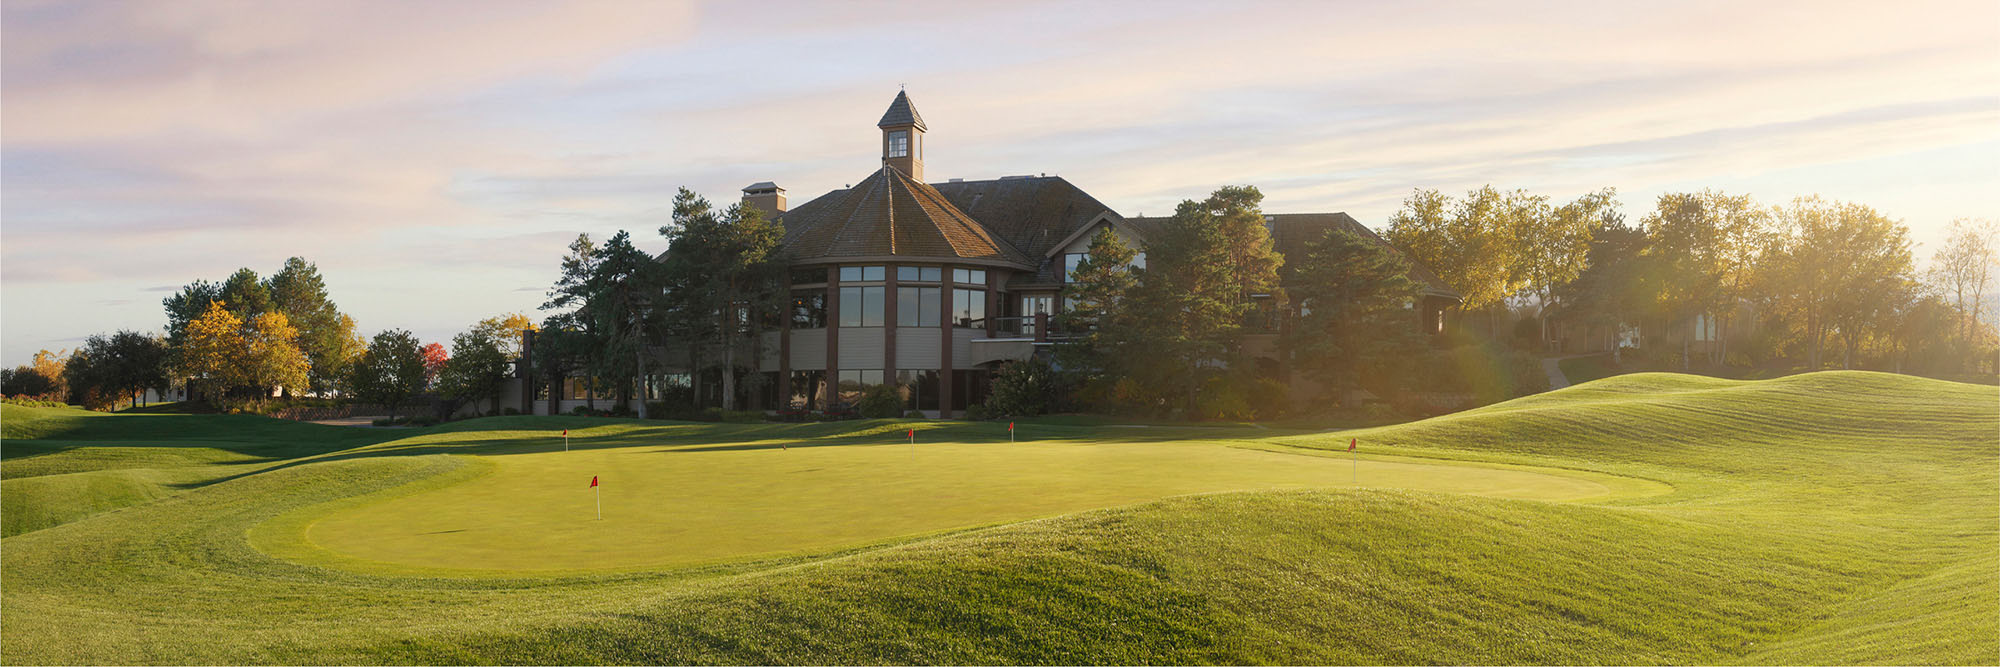 Golf Course Image - Champions Run Clubhouse